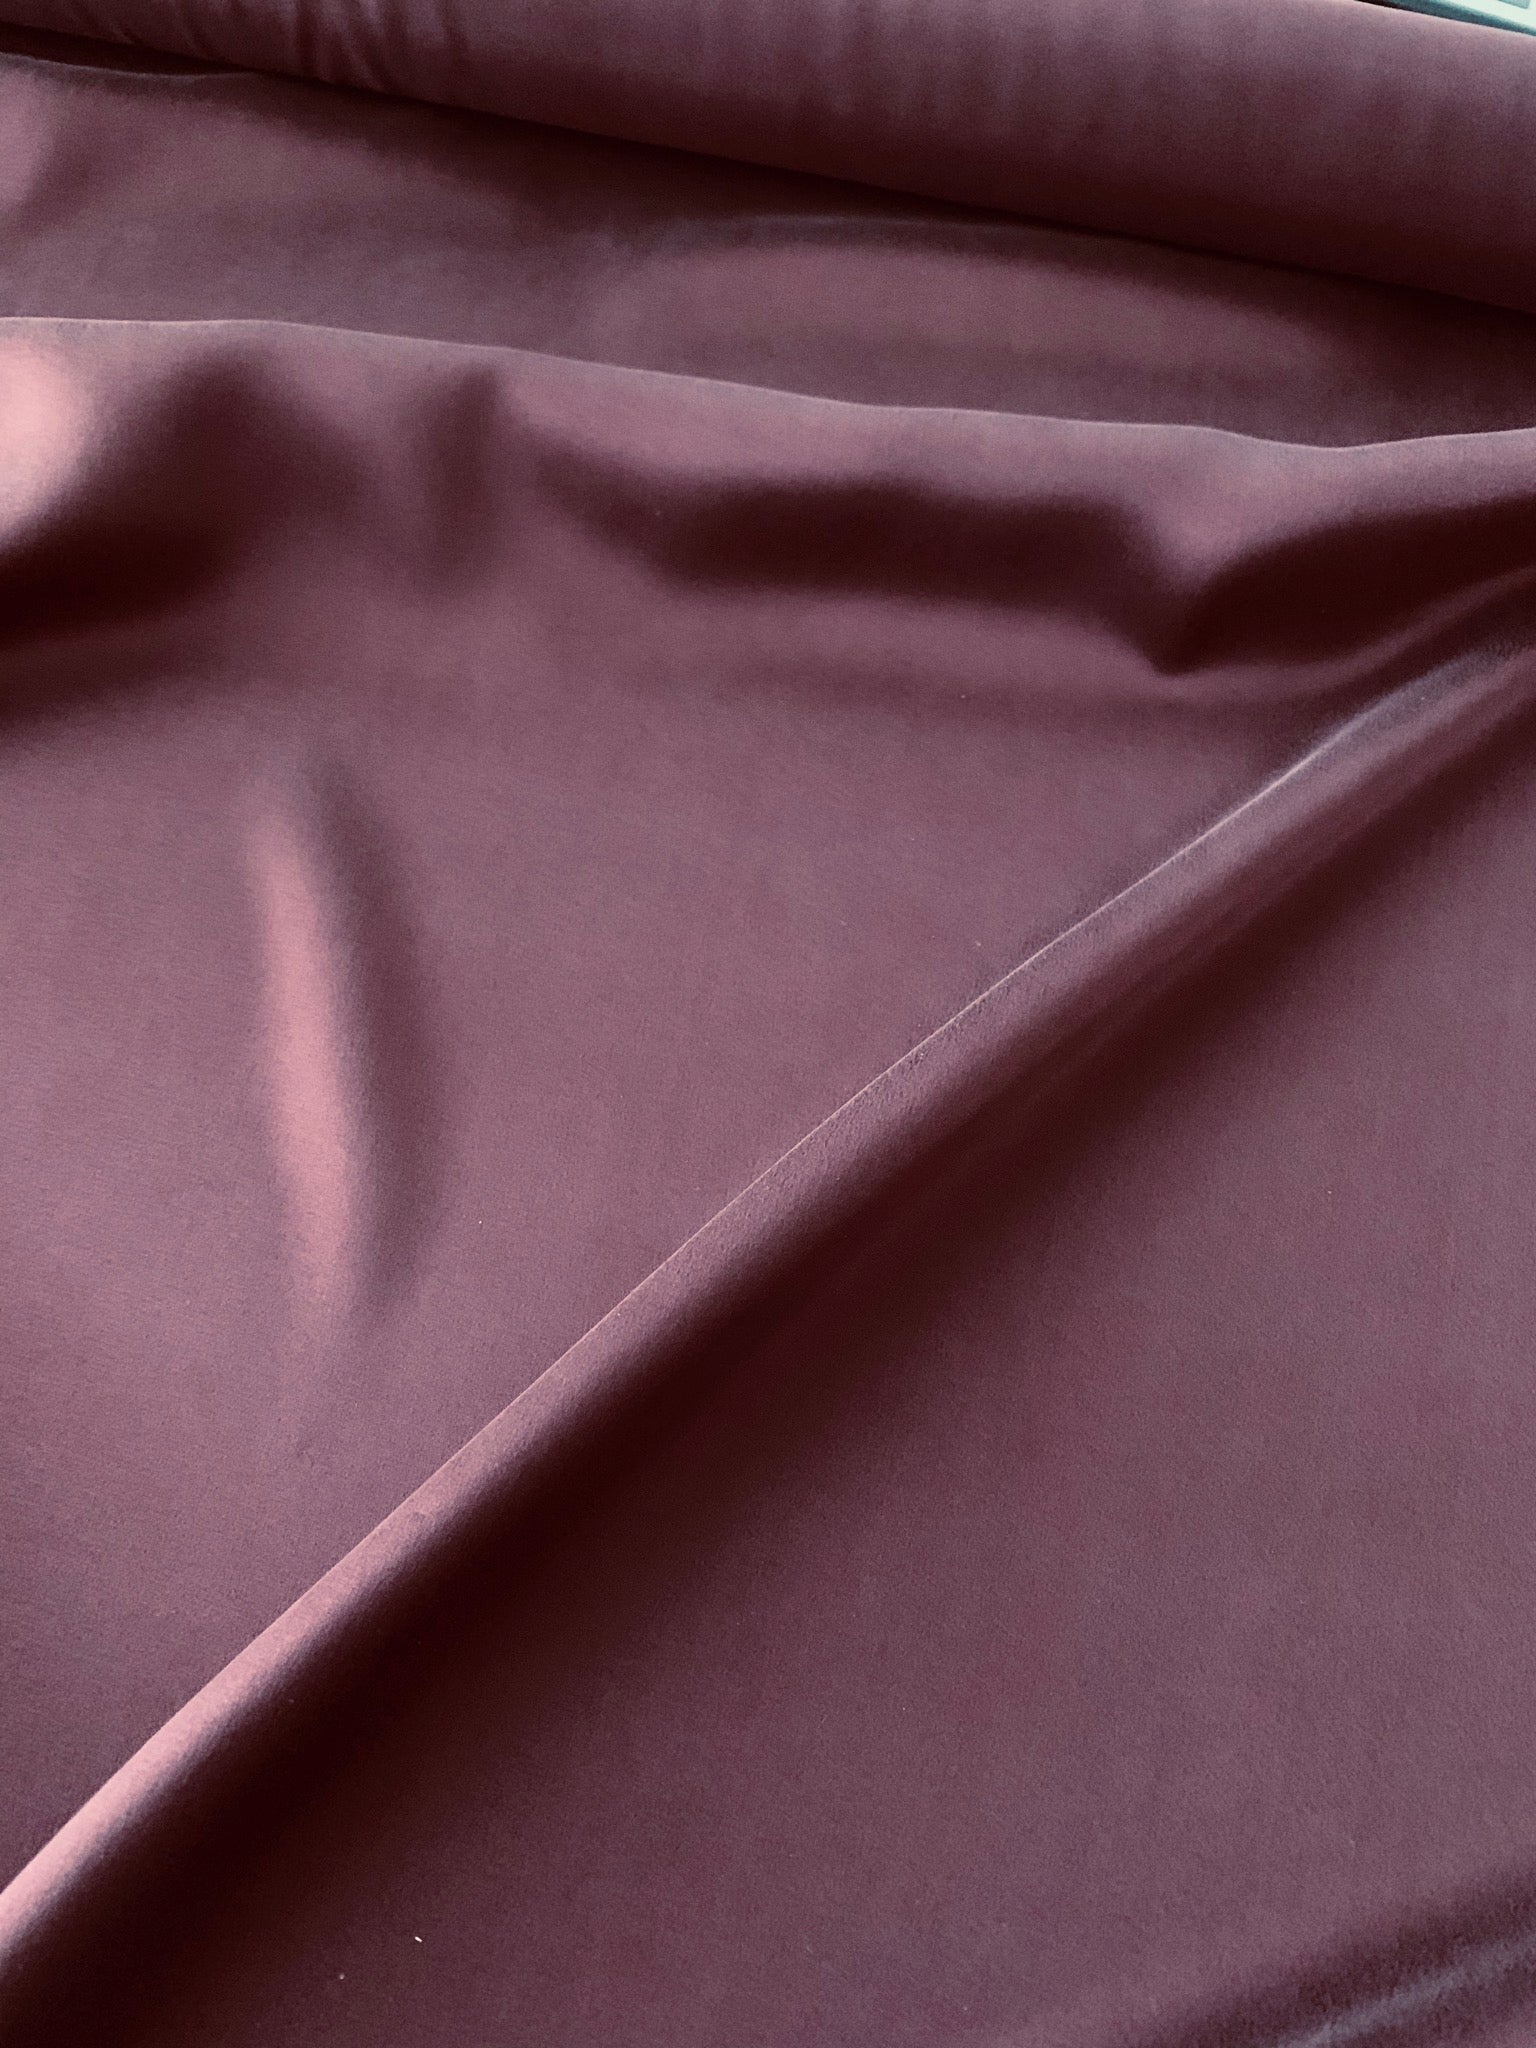 Silk satin in merlot